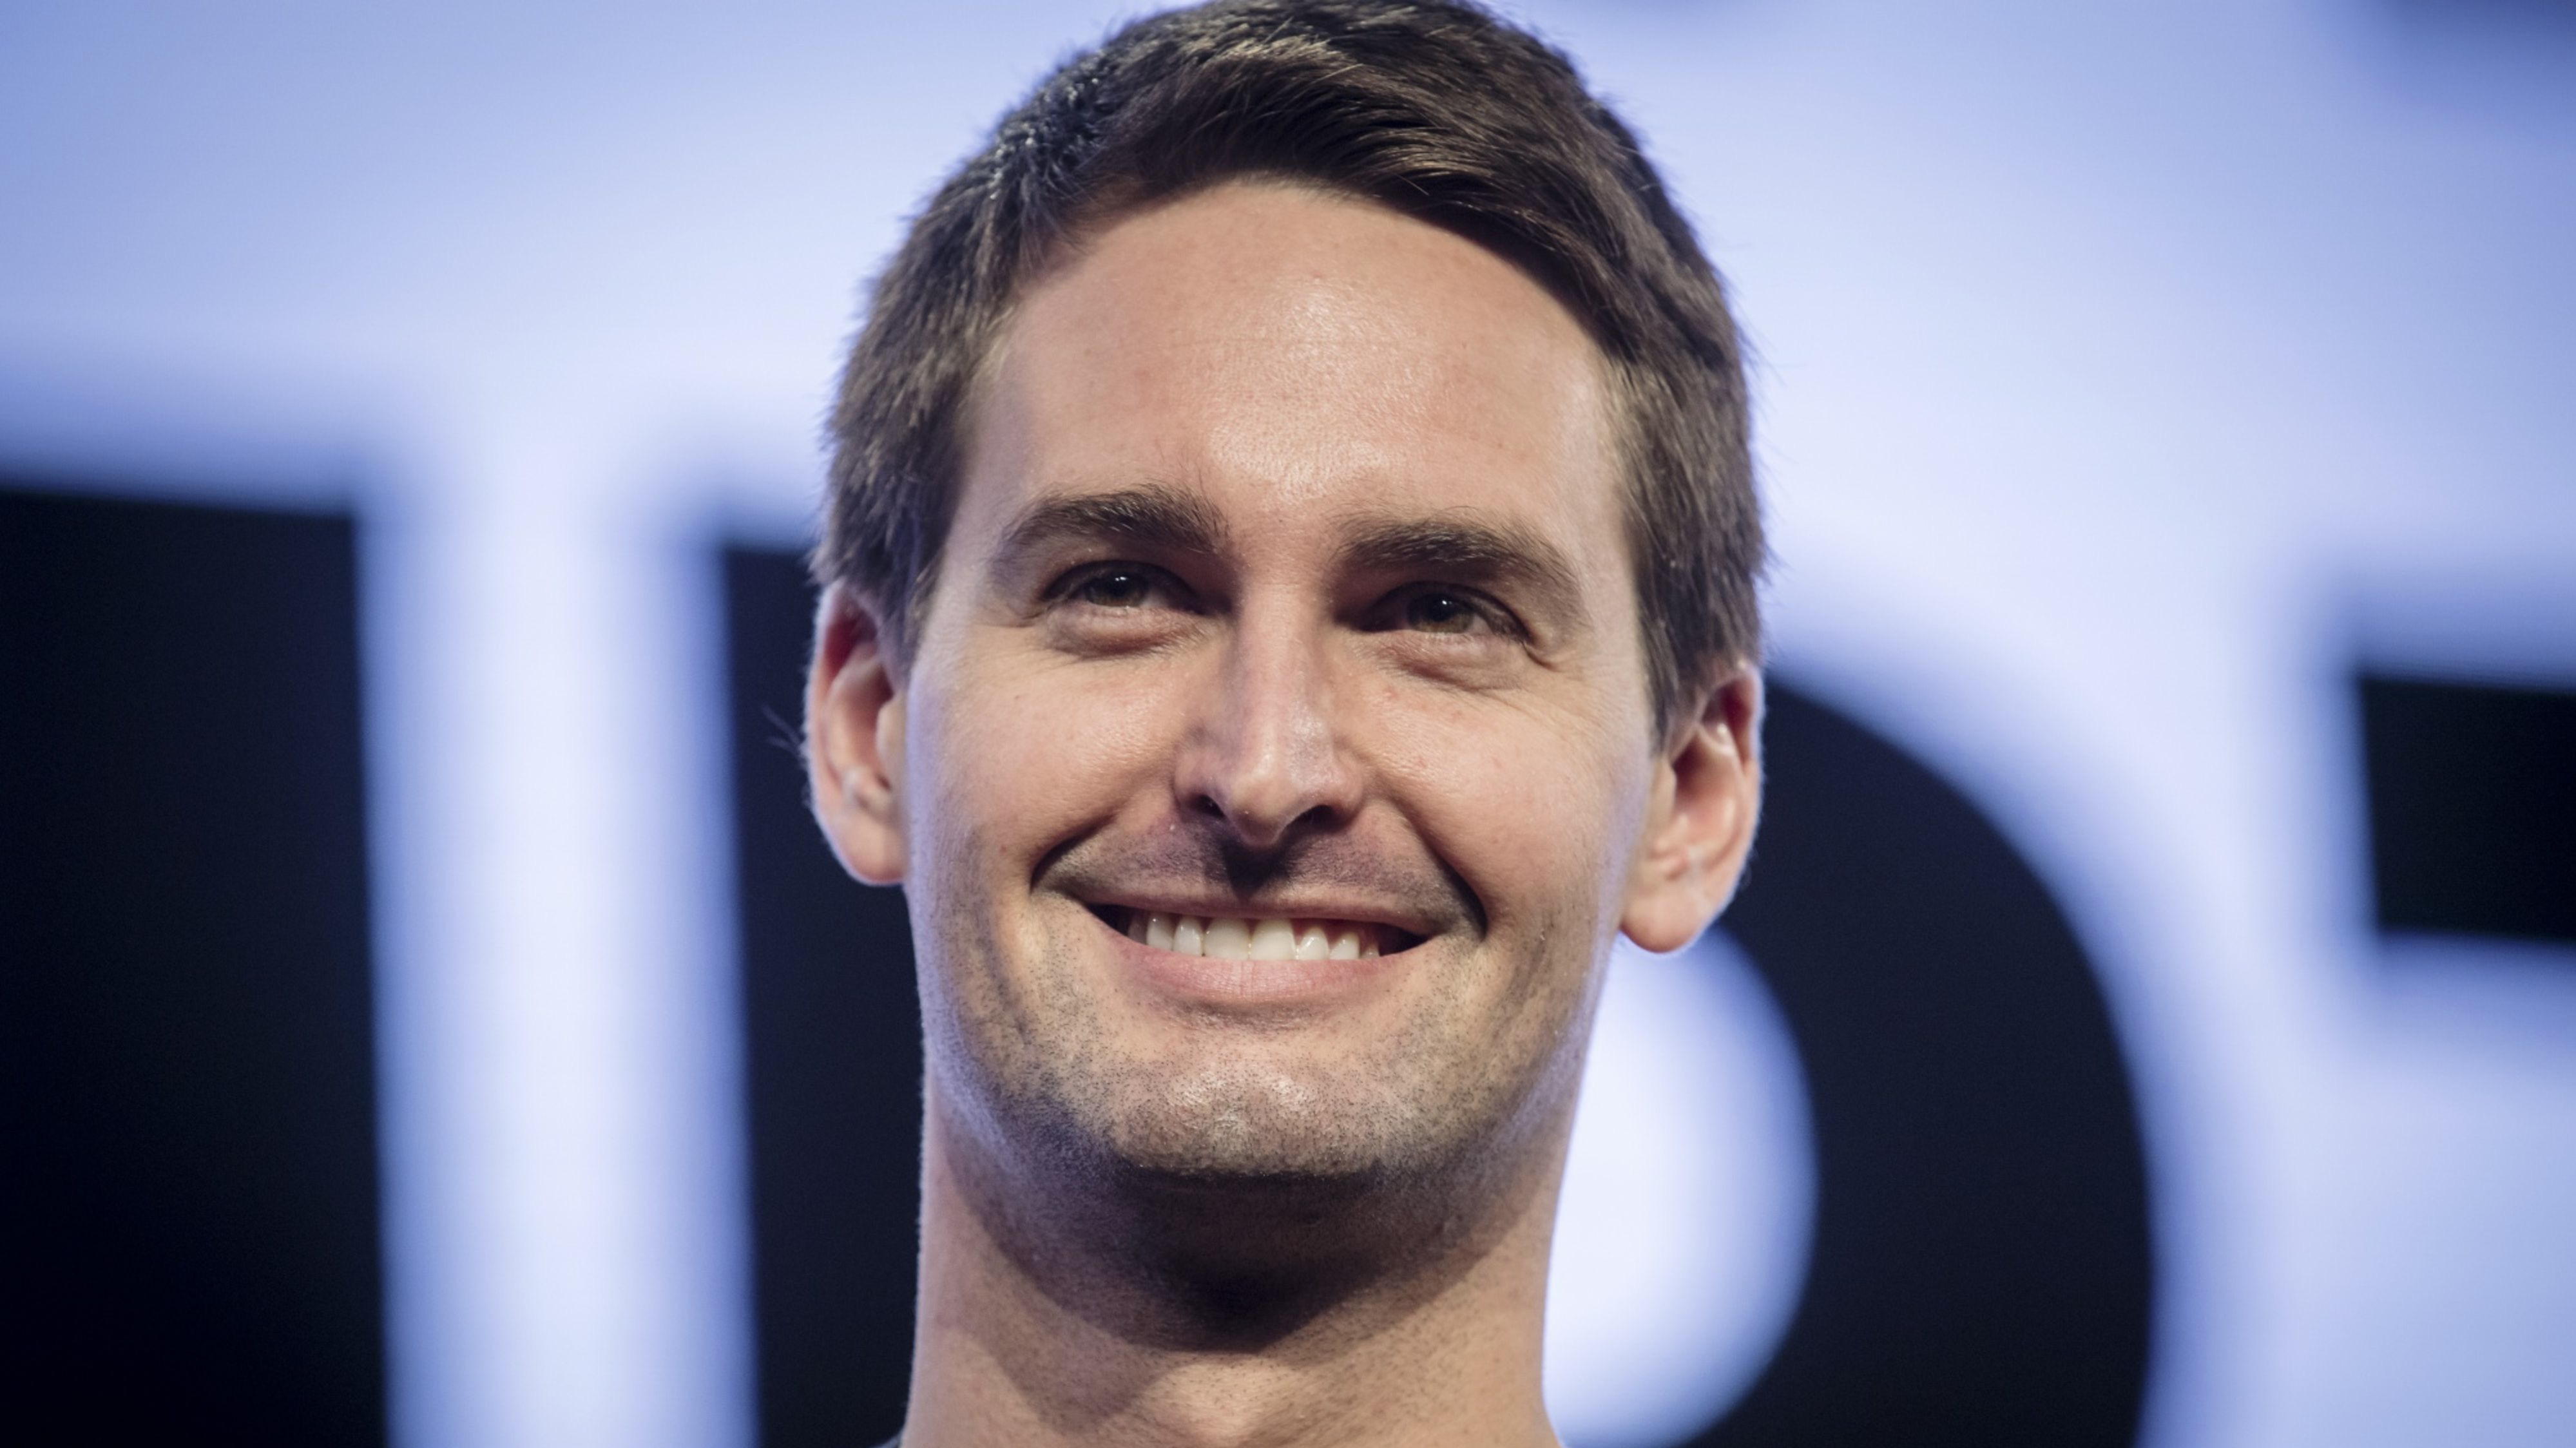 theinformation.com - Martin Peers - Snap, Twitter Show Digital Ad Market is Booming